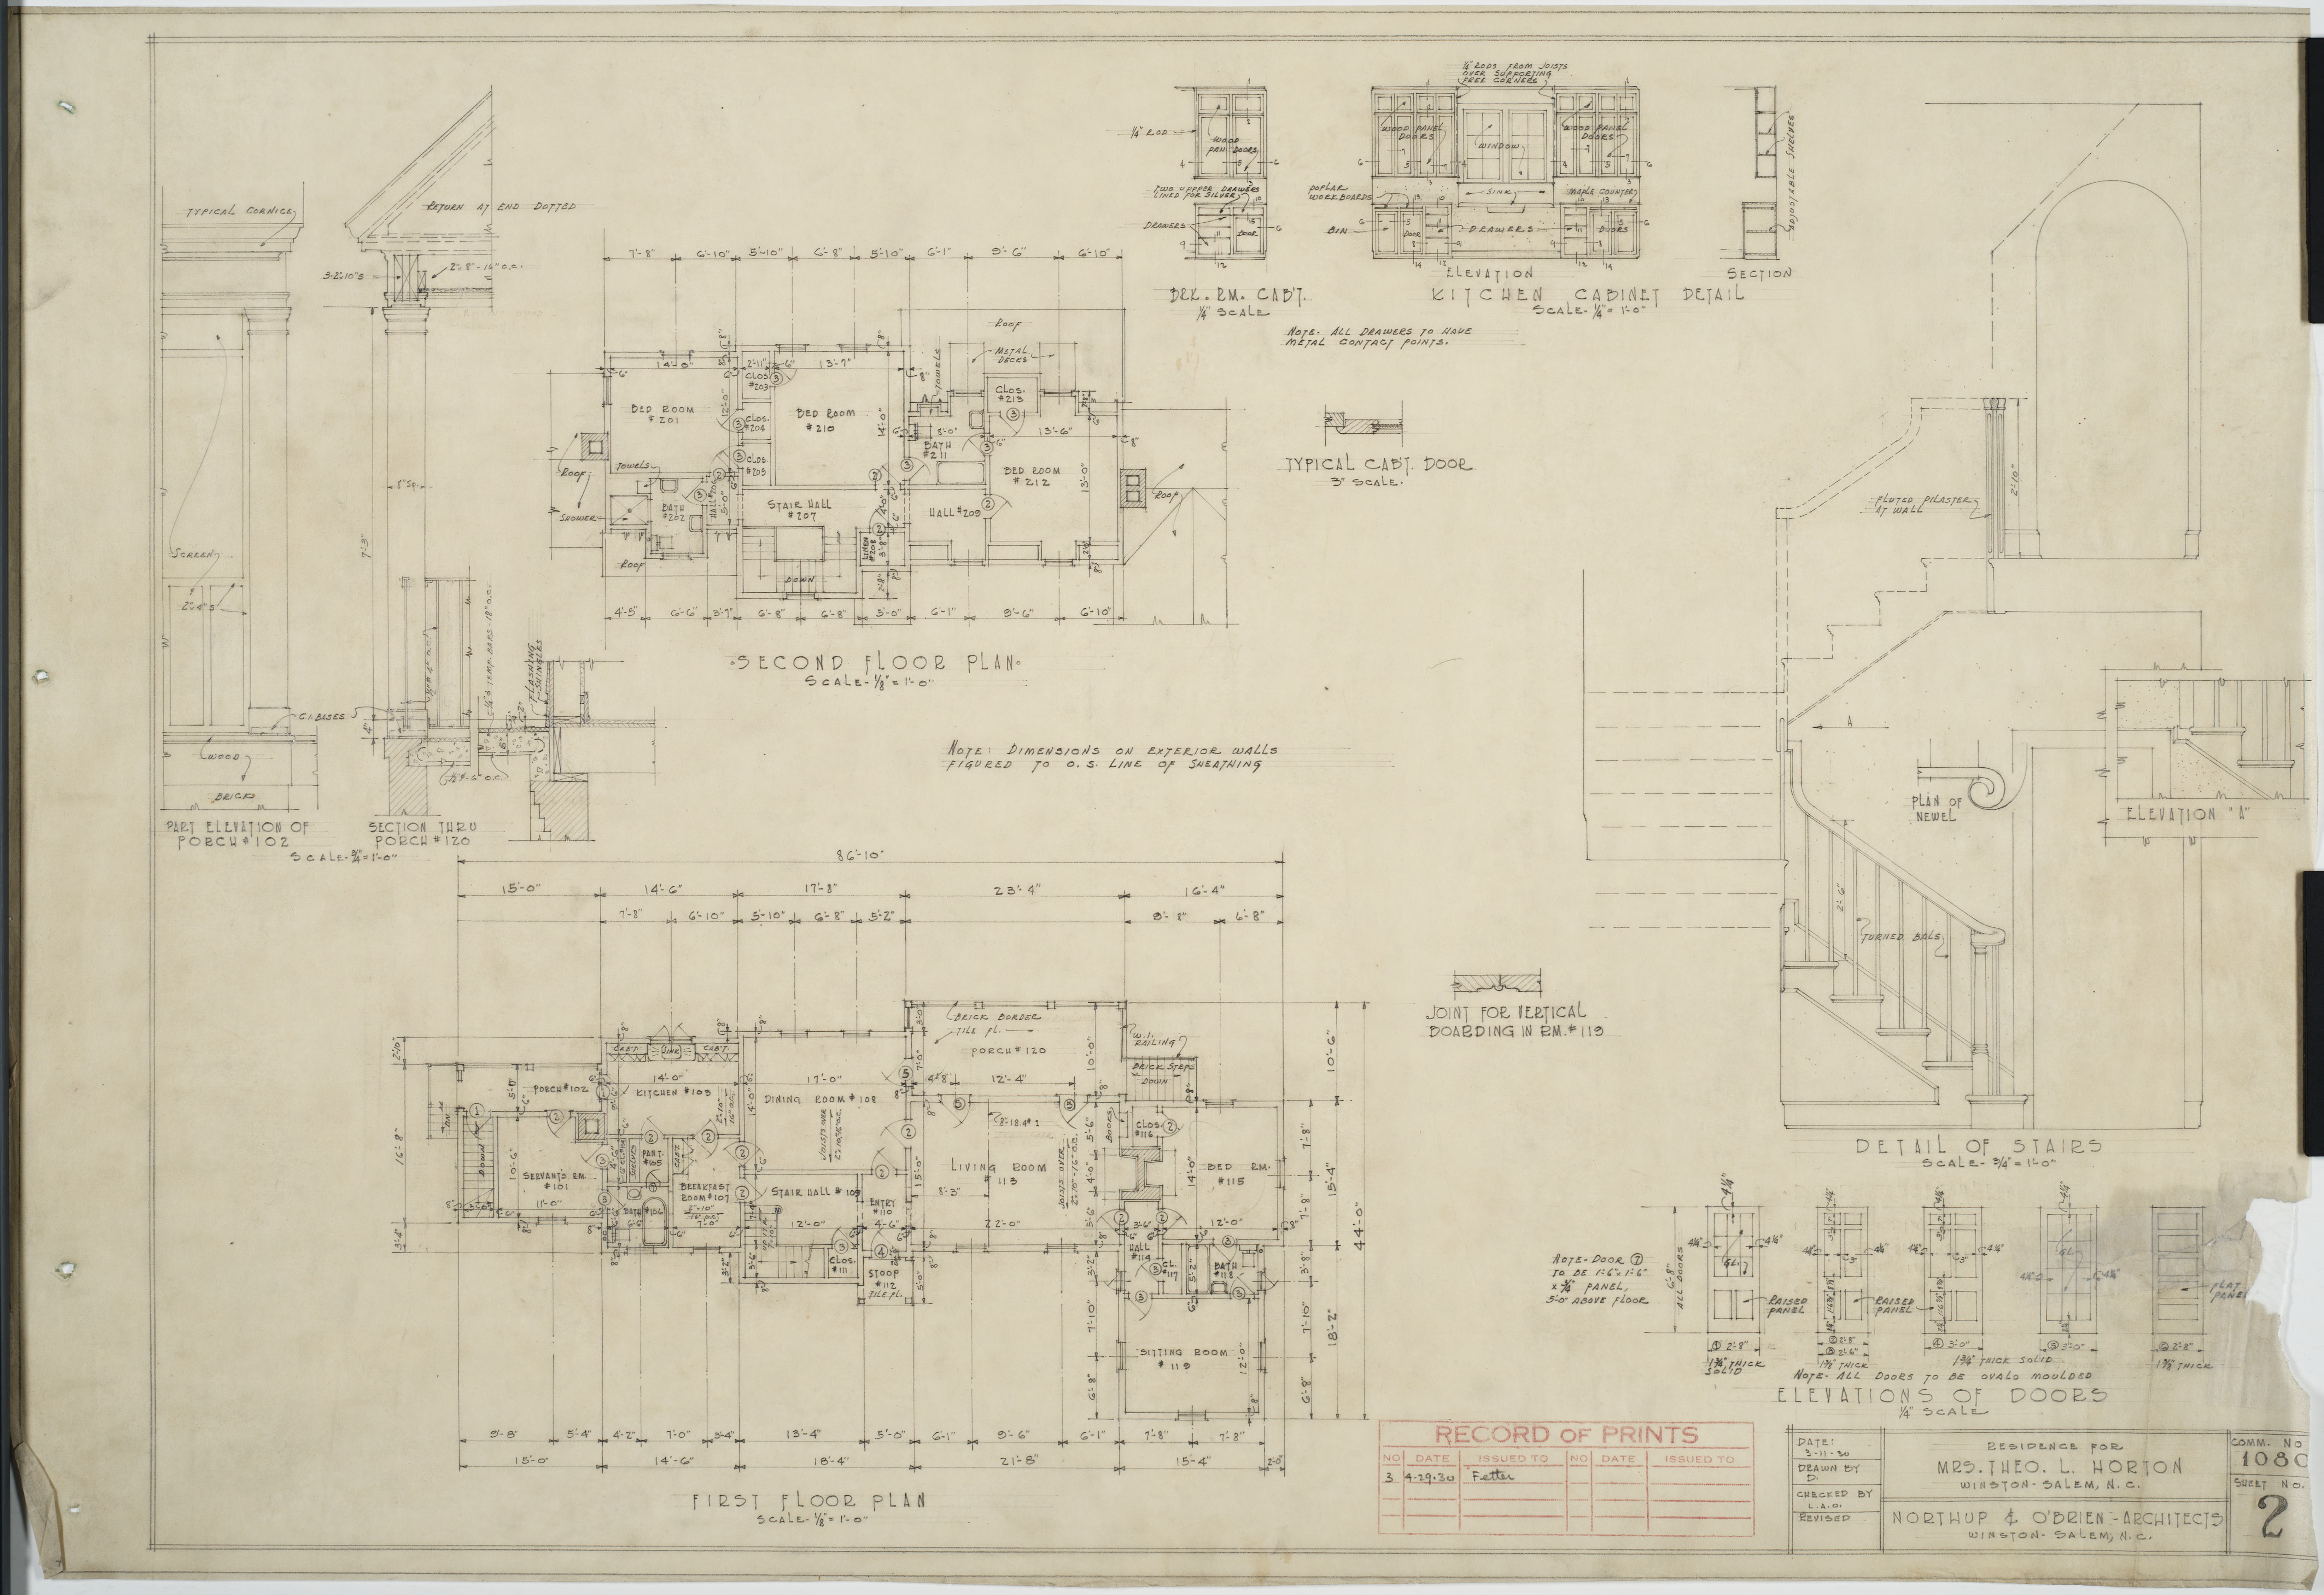 First floor plan second floor plan detail of stairs - Stairs to second floor design ...